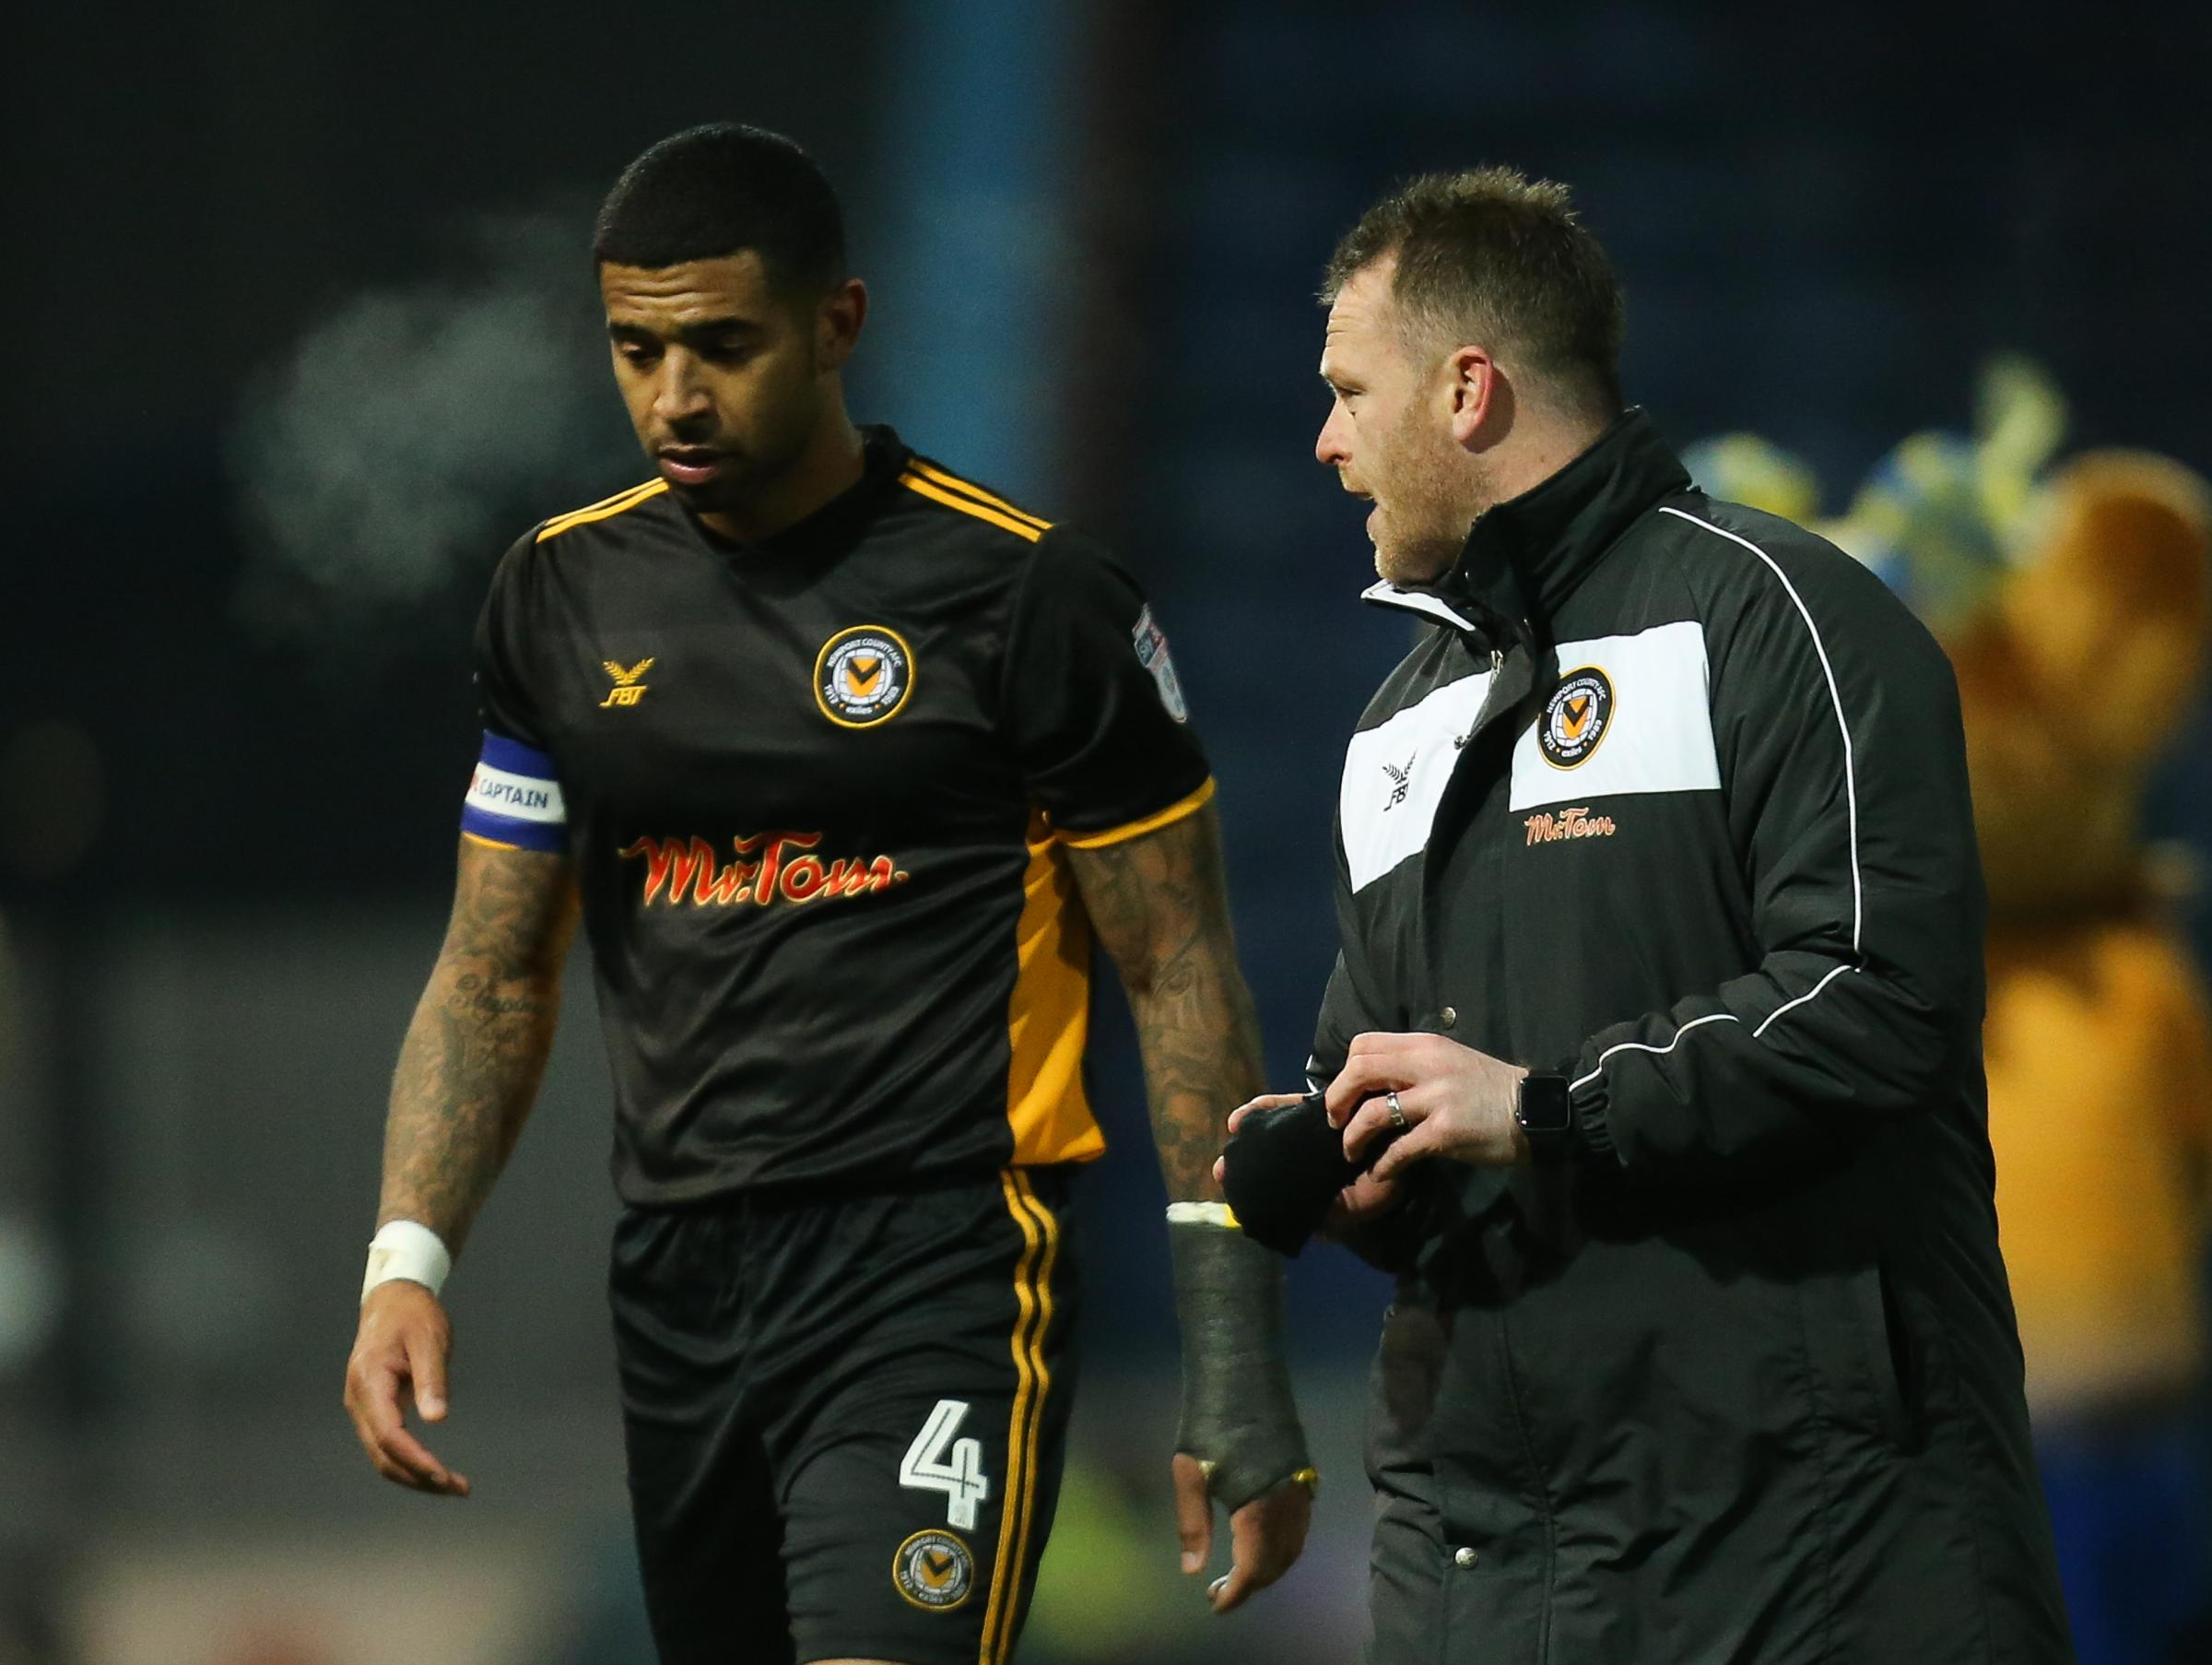 TALKS: Newport County captain Joss Labadie and manager Michael Flynn. Picture: Huw Evans Agency